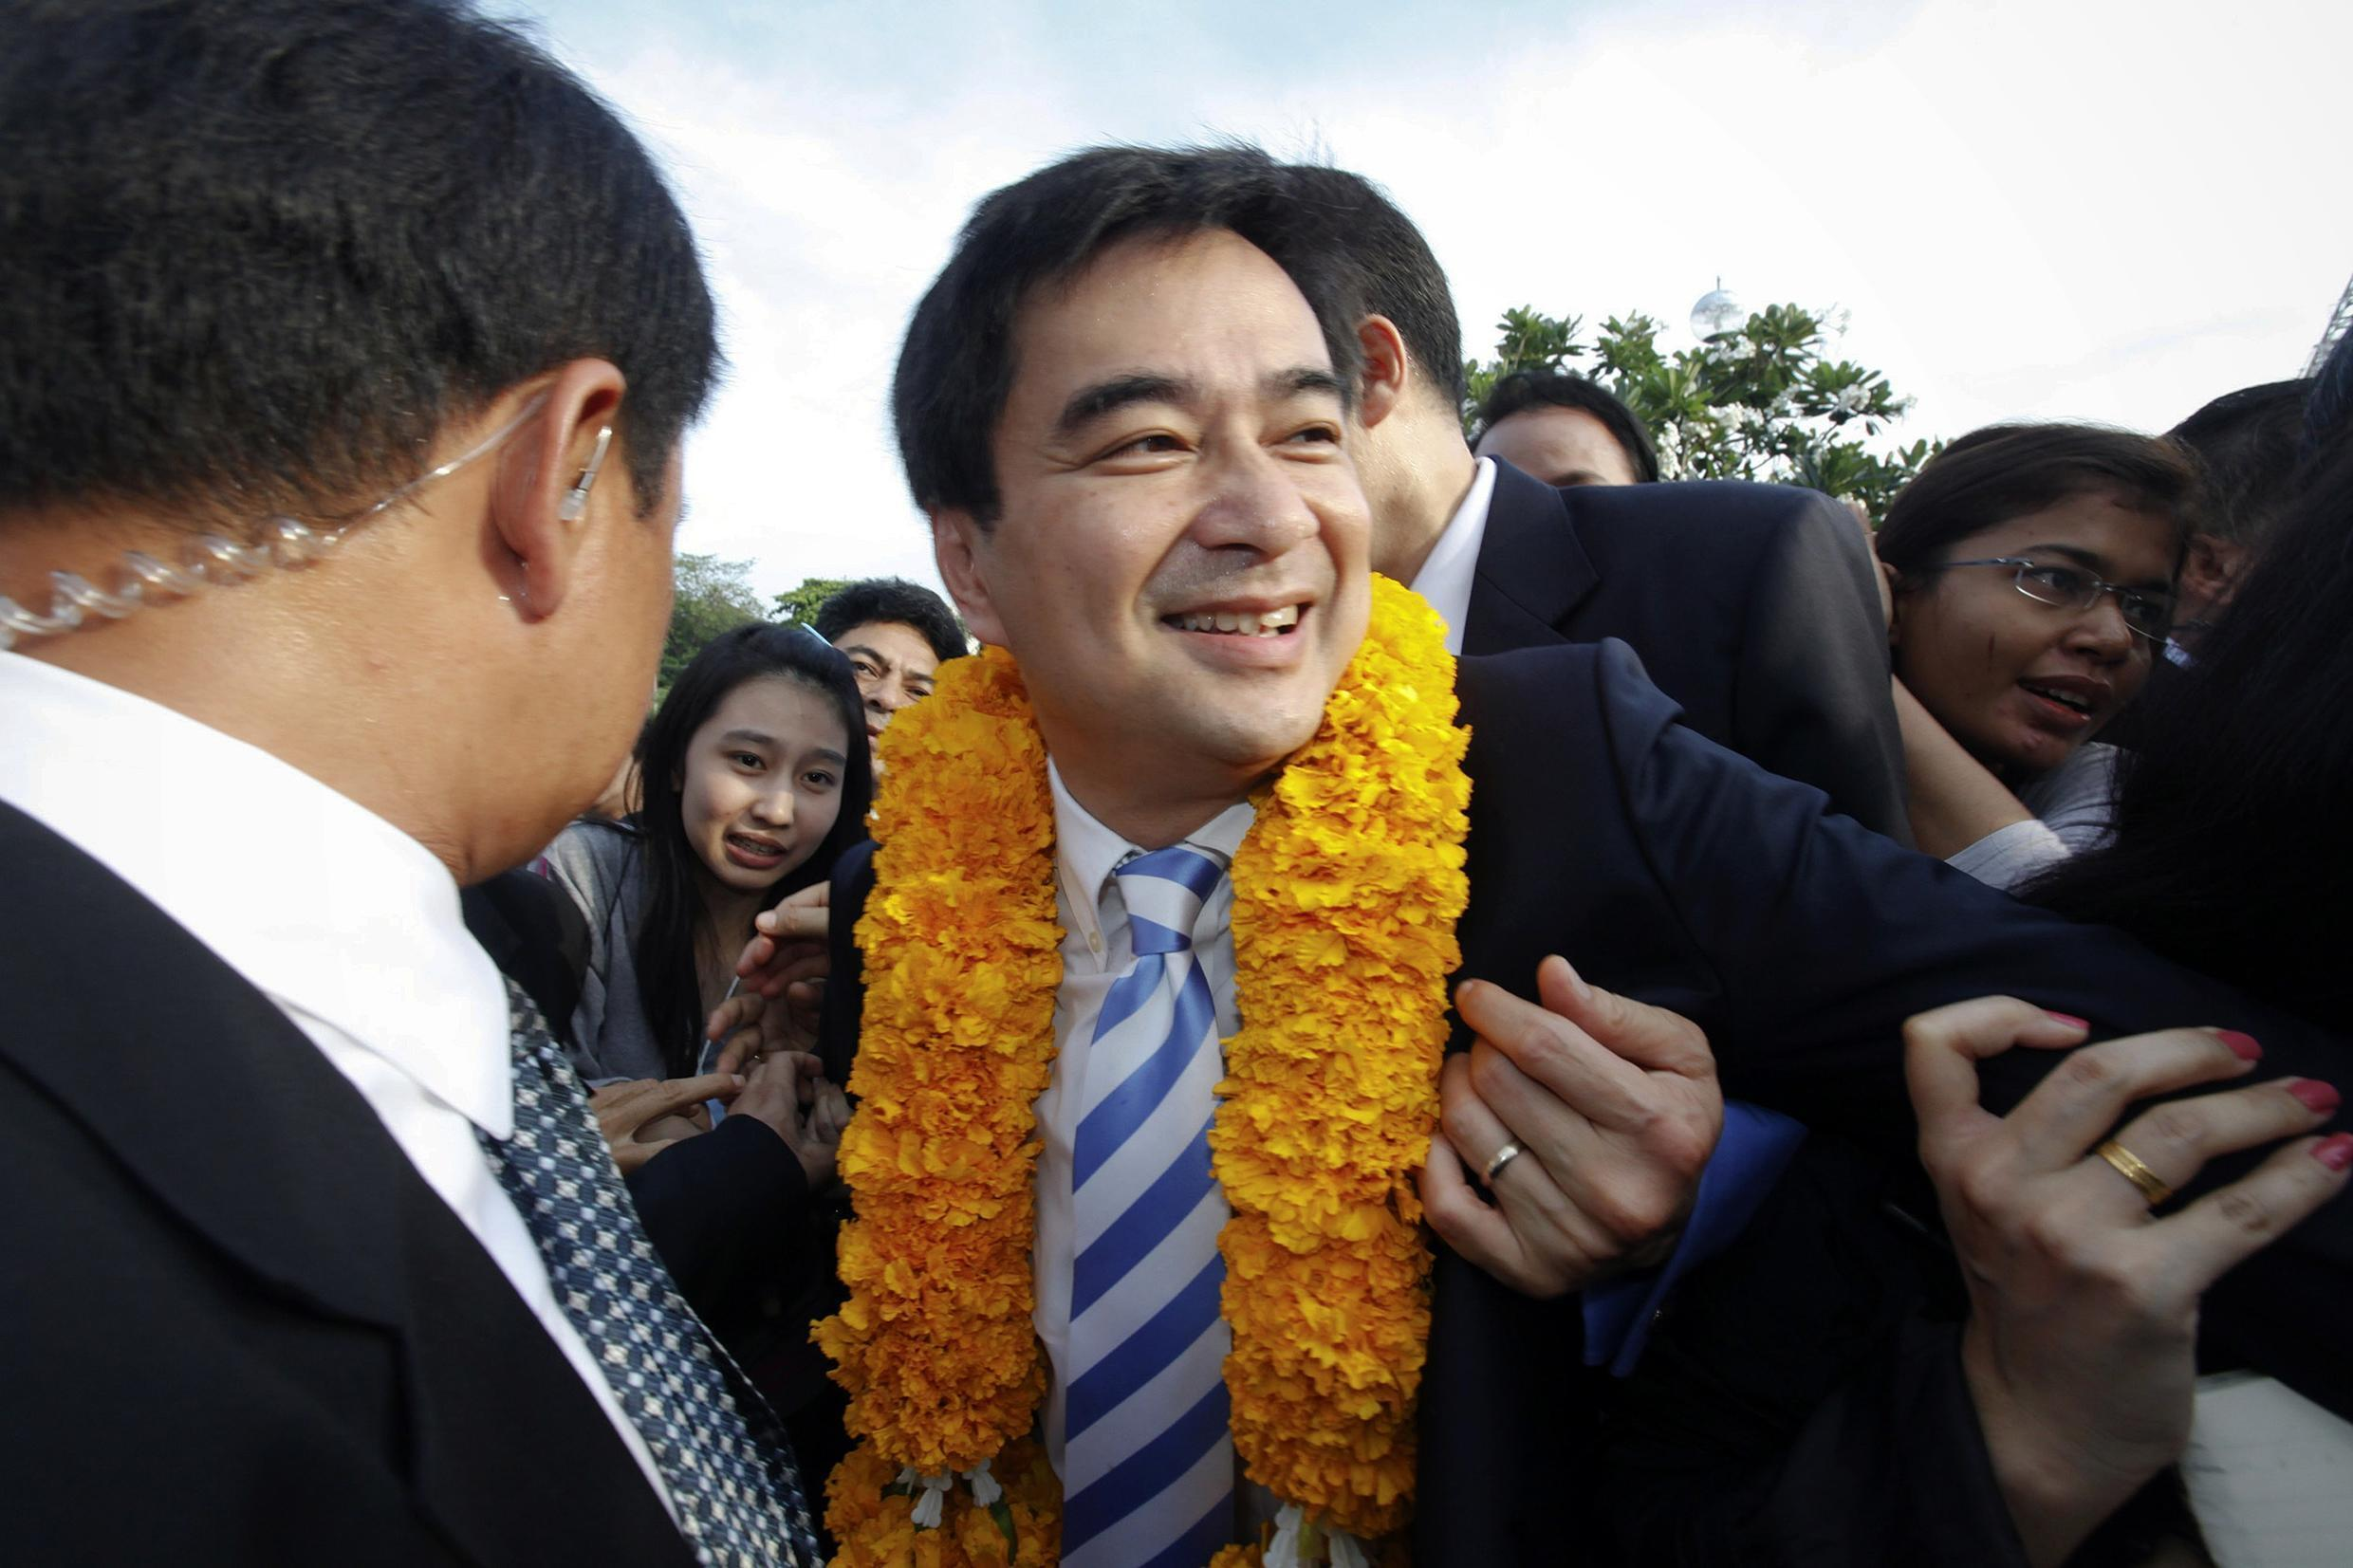 Thai Prime Minister Abhisit Vejjajiva ahead of elections in July